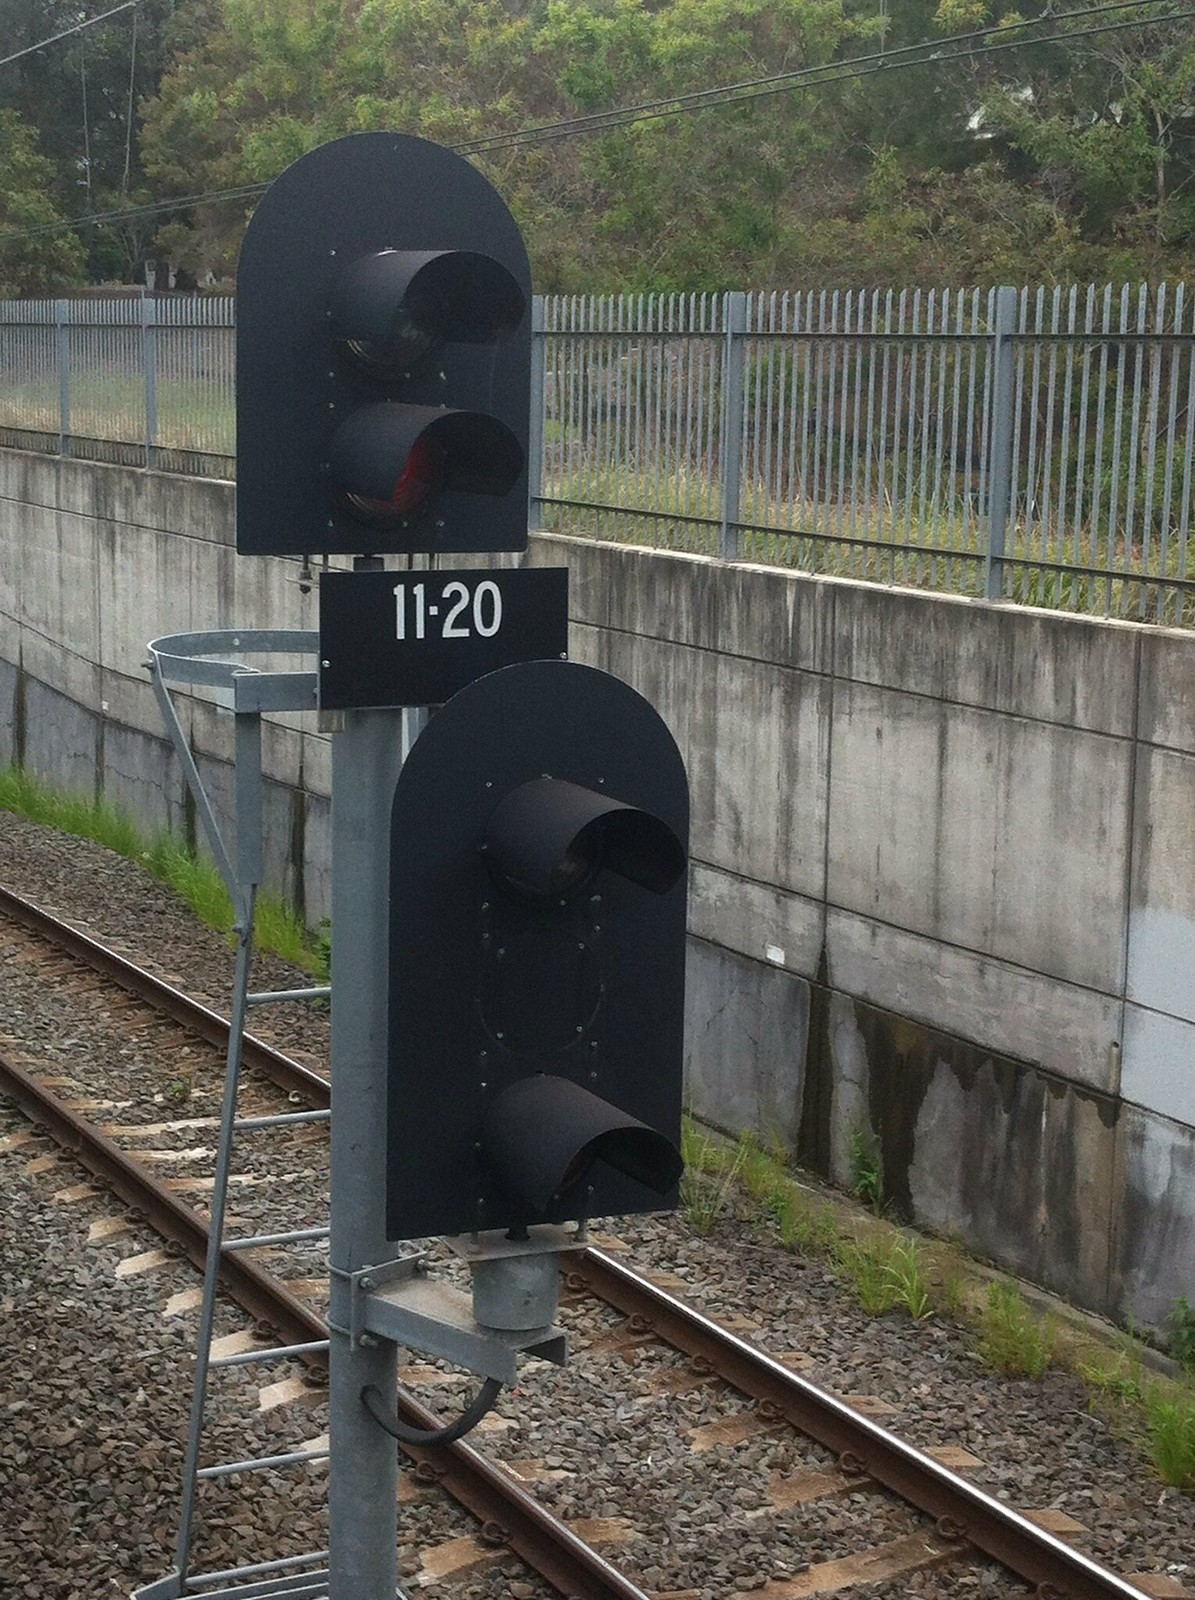 Train Signals by Simon_sees